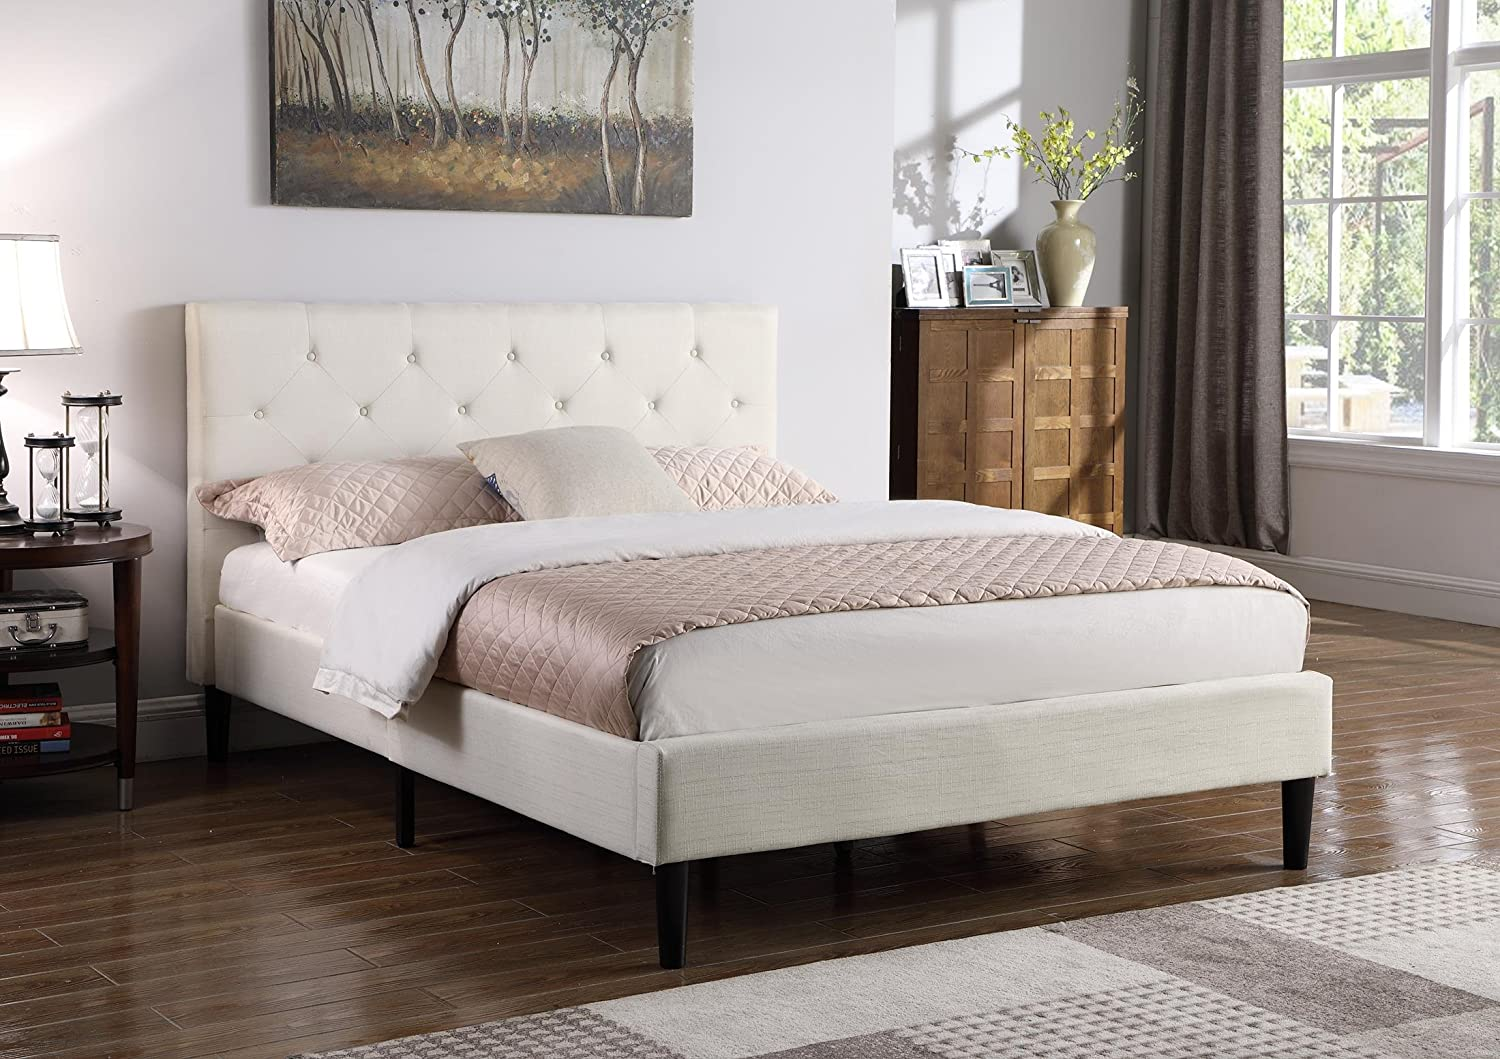 Home Life Premiere Classics Cloth Light Beige Silver Linen 51 Tall Headboard Platform Bed with Slats King – Complete Bed 5 Year Warranty Included 021